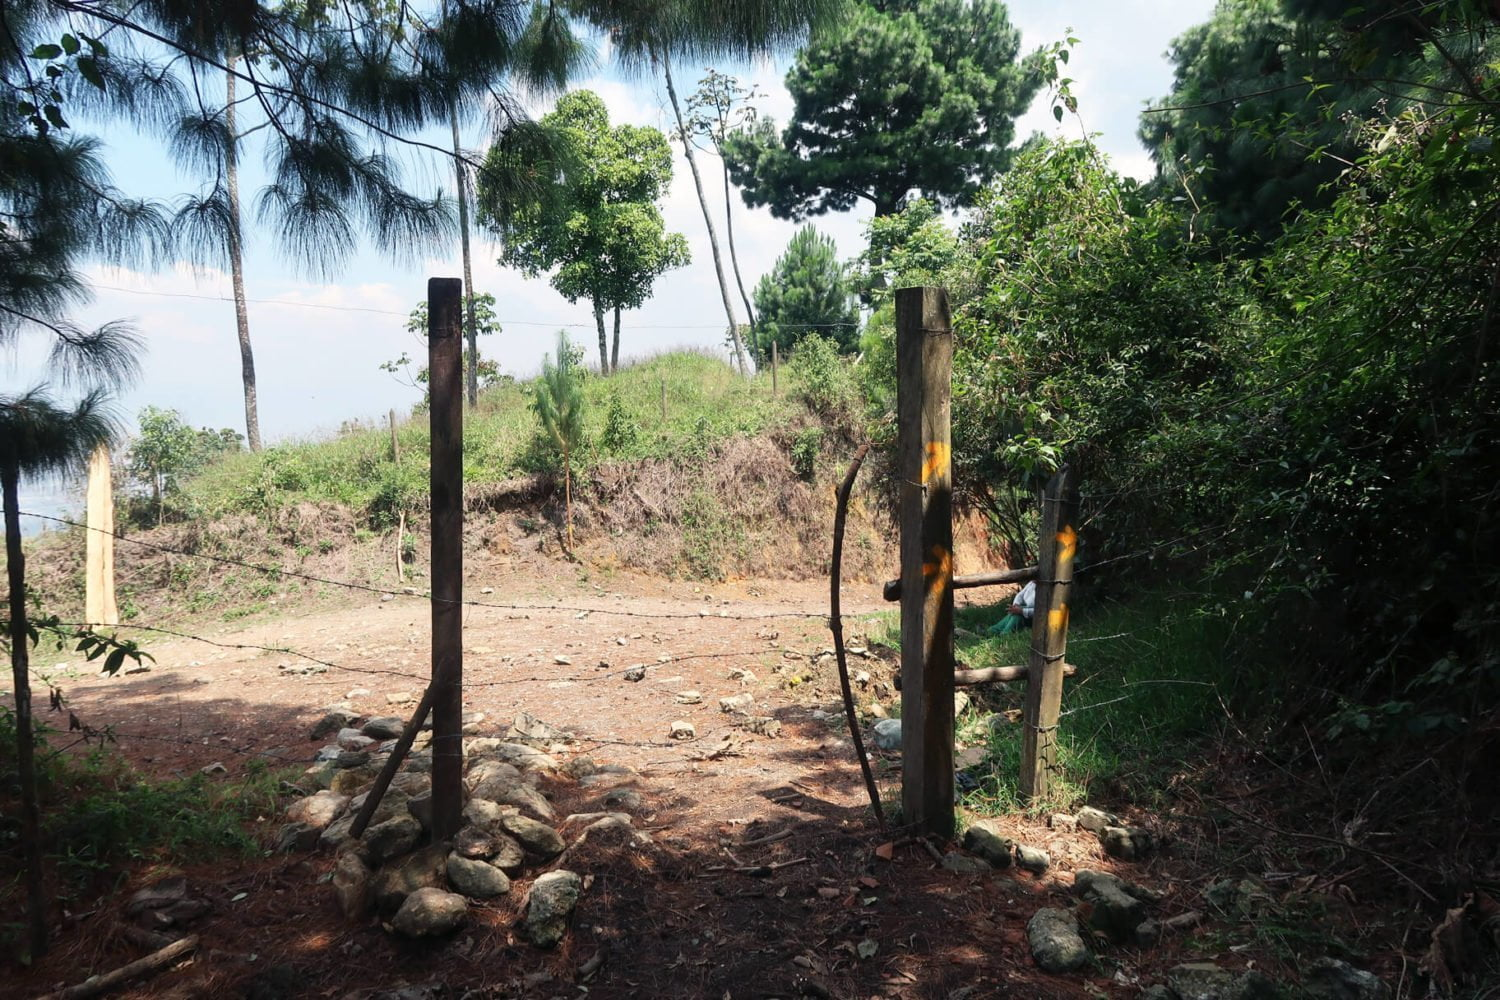 Fence leading towards las Cuevas del Higueron